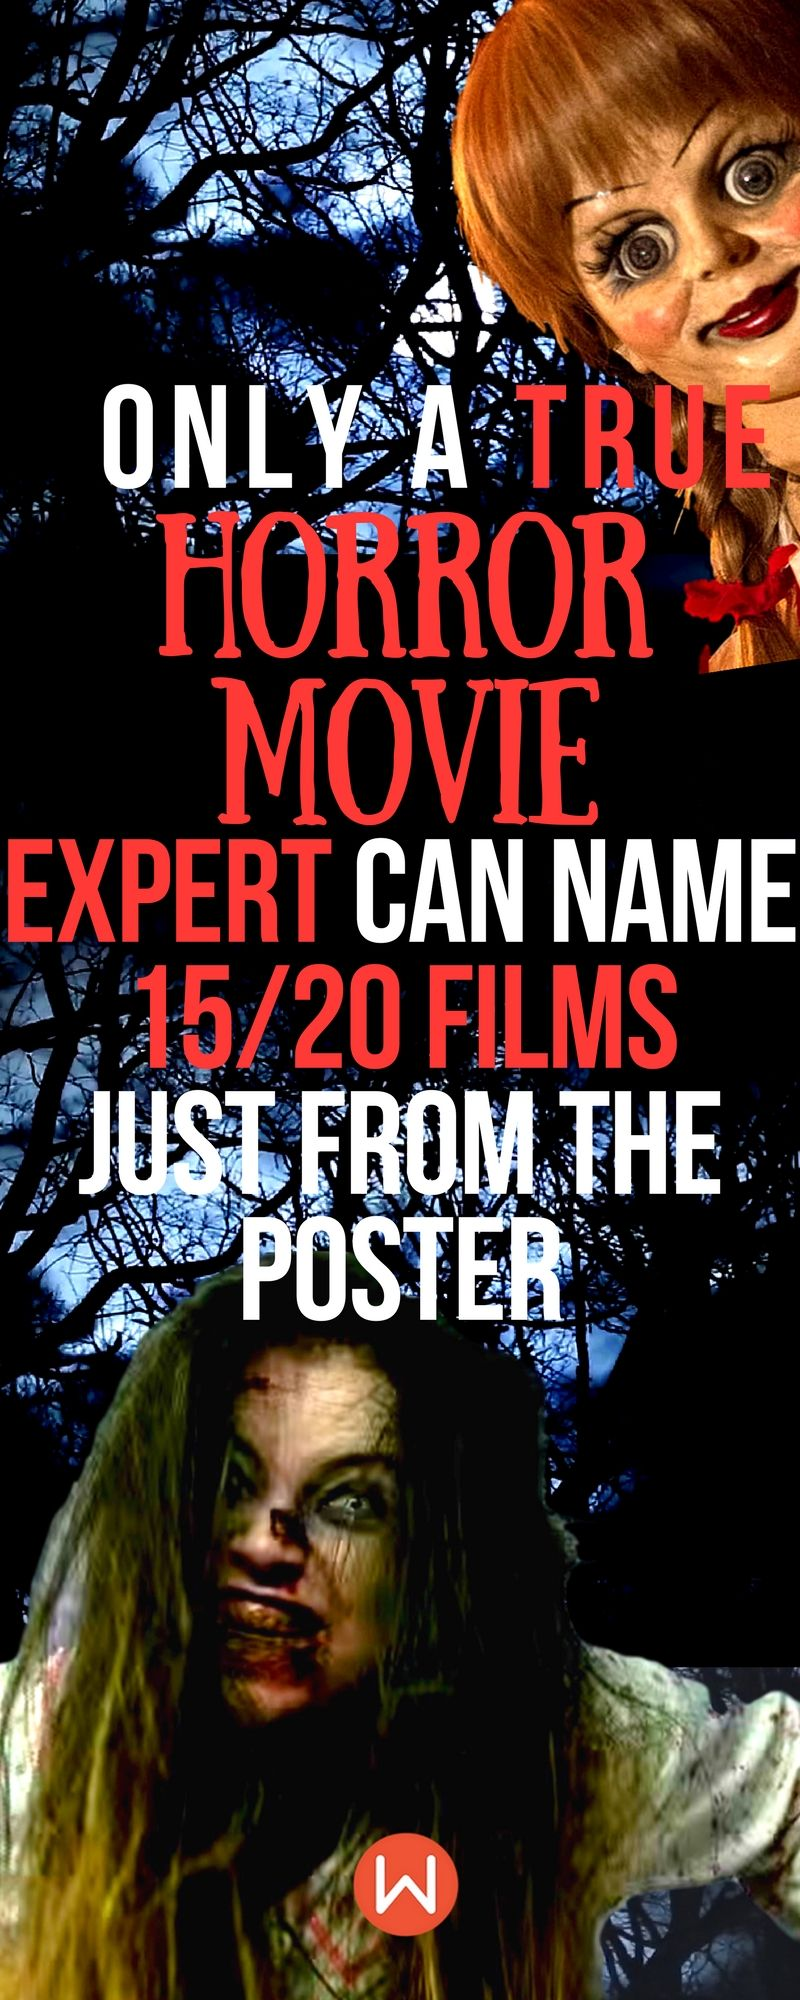 Only A True Horror Movie Expert Can Name 15/20 Films Just